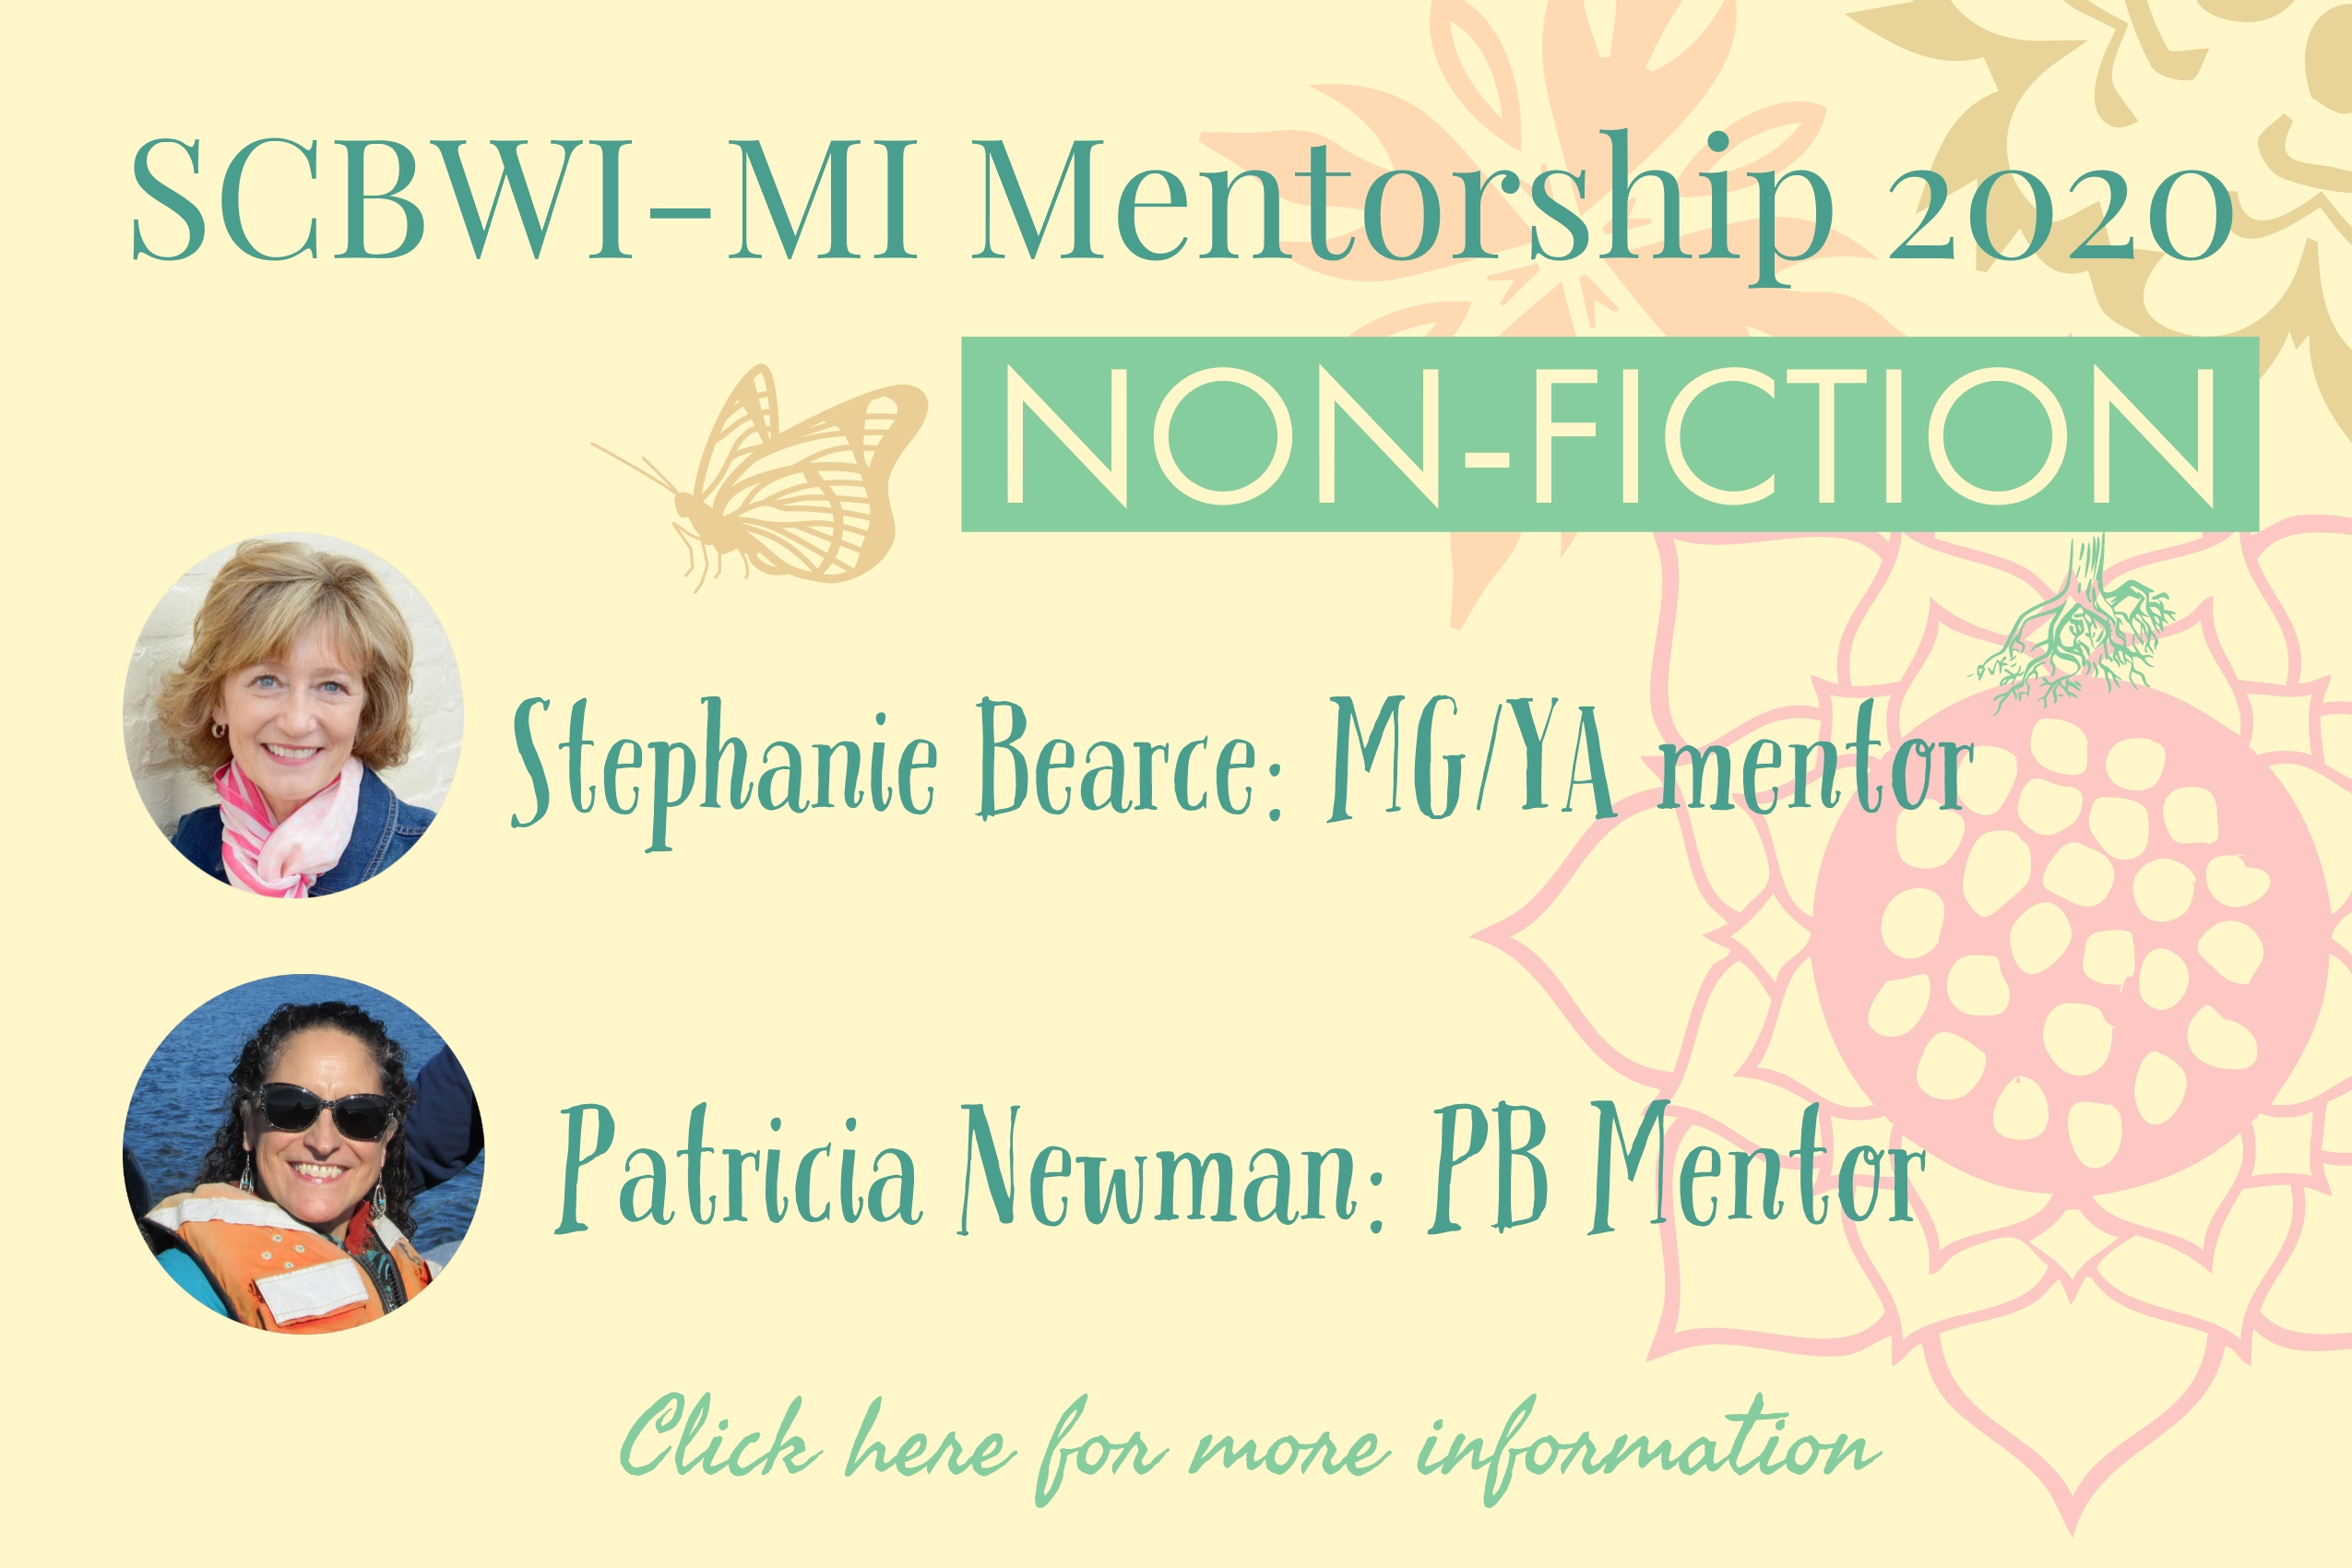 We're delighted to announce that SCBWI-MI will hold TWO nonfiction mentorship competitions in 2020. One will be for nonfiction picture books, and the other will be nonfiction Middle Grade or Young Adult books. Eligibility: Both mentorships are open to SCBWI members (of all membership levels) who live in Michigan, with one exception: Won and Done: If you have previously won any mentorship competition offered by SCBWI-MI, you are ineligible to apply for another. Runners-up are welcome to apply. You may apply to one mentorship, not both.  During the submission window, we will provide links to the registration platforms on this page.  The submission window opens at 8:00 am EDT on May 5, 2020. Once you register for one of the mentorships, you have 24 hours to email your manuscript or proposal to Ann Finkelstein. Winners receive a year-long mentorship with Stephanie Bearce or Patricia Newman. The mentorship includes six submissions by the mentee and six critiques by the mentor. All applicants receive constructive comments from three super-secret, superstar judges. The Nonfiction picture book mentorship with author Patricia Newman: Patricia Newman's award-winning books show kids how their actions can ripple around the world. She is the author of Robert F. Sibert Honor Book Sea Otter Heroes: The Predators That Saved an Ecosystem; as well as NSTA Outstanding Science Trade Book Eavesdropping on Elephants: How Listening Helps Conservation;  Zoo Scientists to the Rescue, a Bank Street College of Education Best Children's Book; Green Earth Book Award winner, Plastic, Ahoy! Investigating the Great Pacific Garbage Patch; Booklist Editor's Choice title Ebola: Fears and Facts; and Neema's Reason to Smile, winner of a Parents' Choice Award. Newman hopes to empower kids to think about the adults they'd like to become. Her author visits are described as